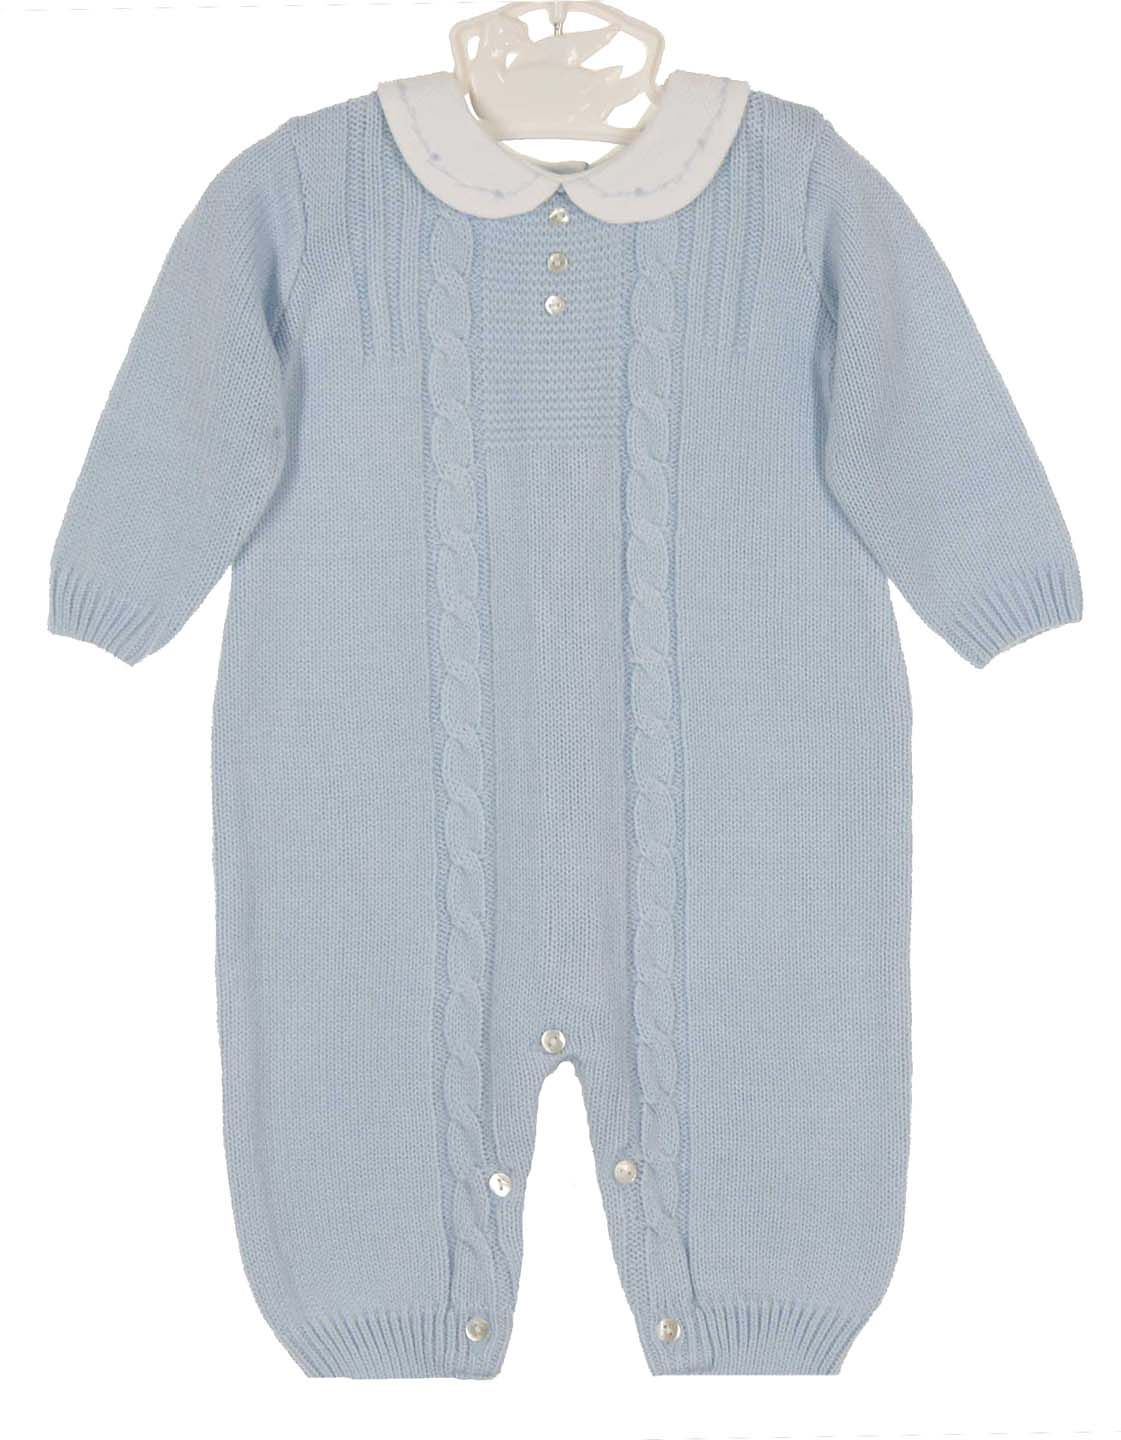 8e4efd8f7 NEW Sarah Louise Blue Knit Romper with Embroidered White Pique ...